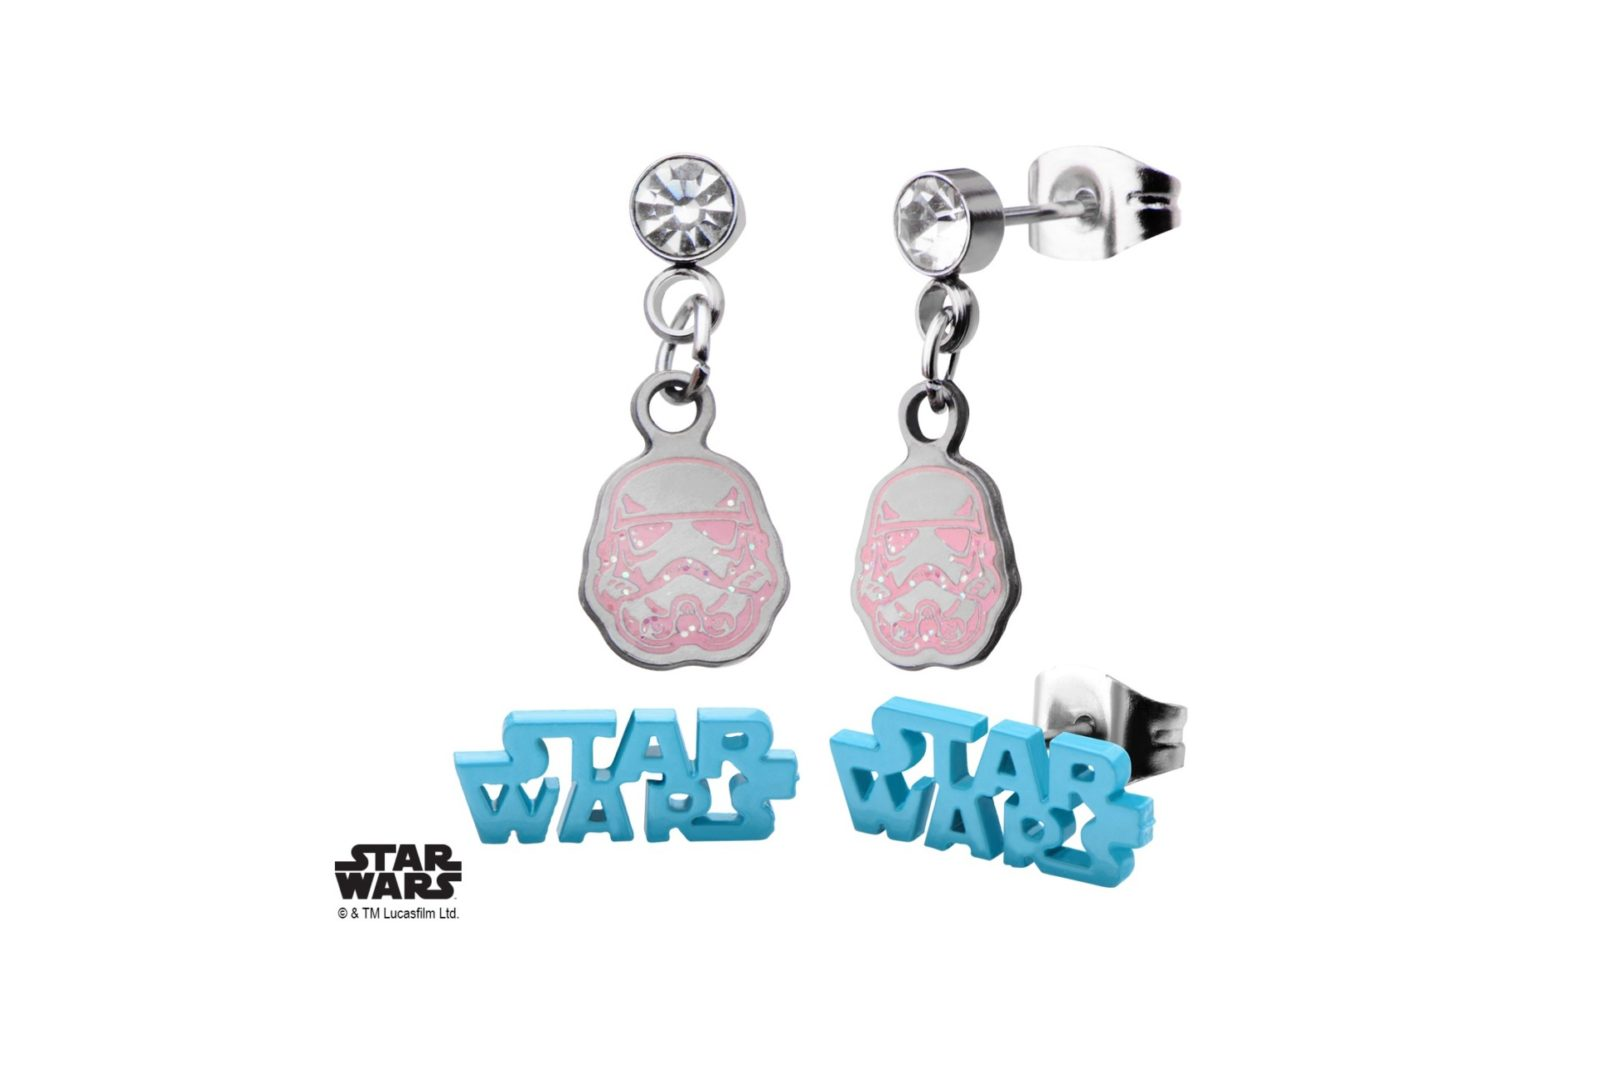 New Body Vibe x Star Wars earring set